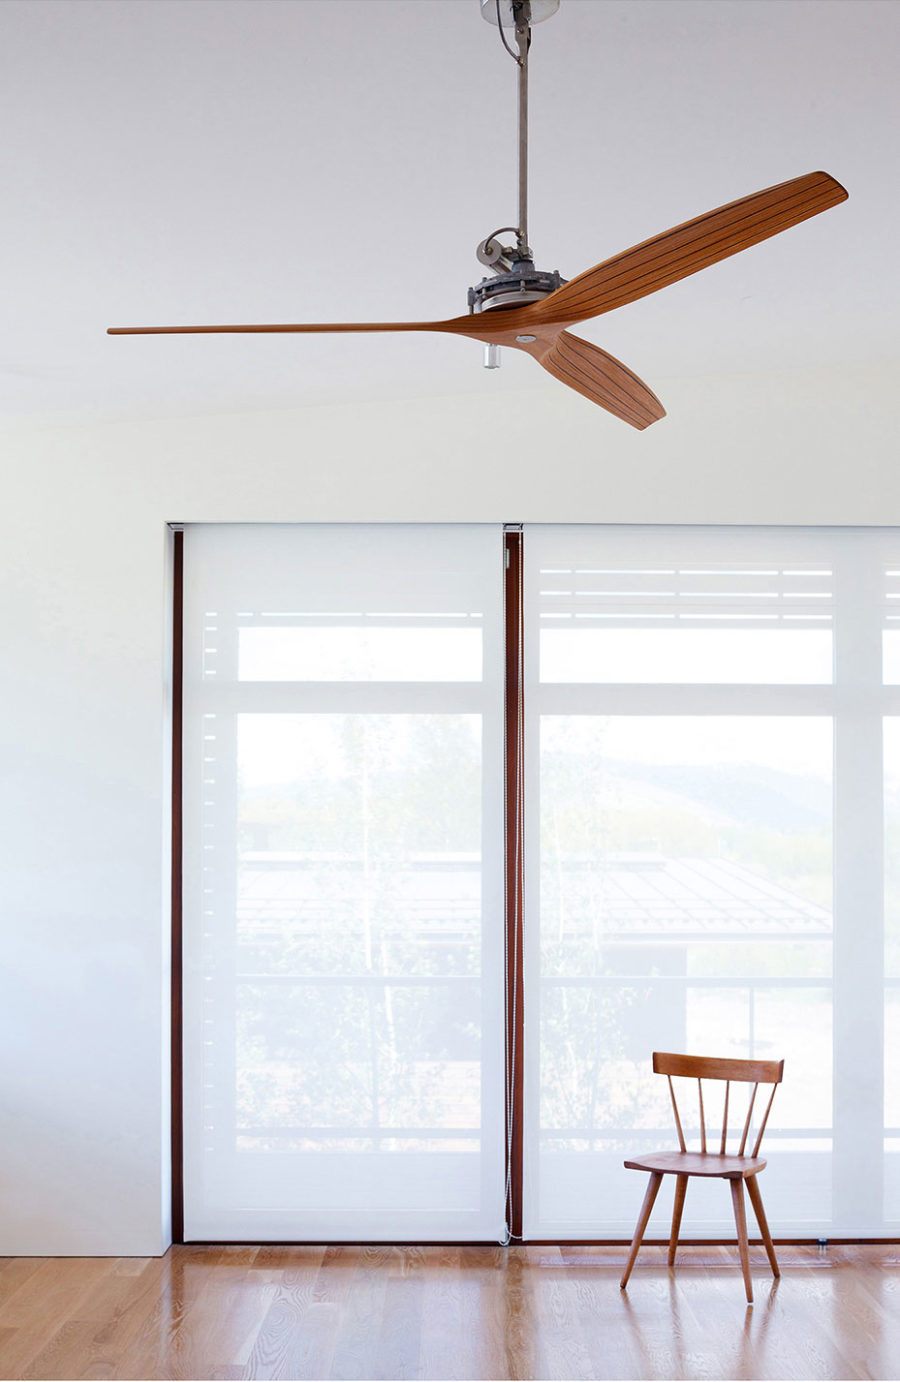 Modern window treatments allow more privacy in the modern home